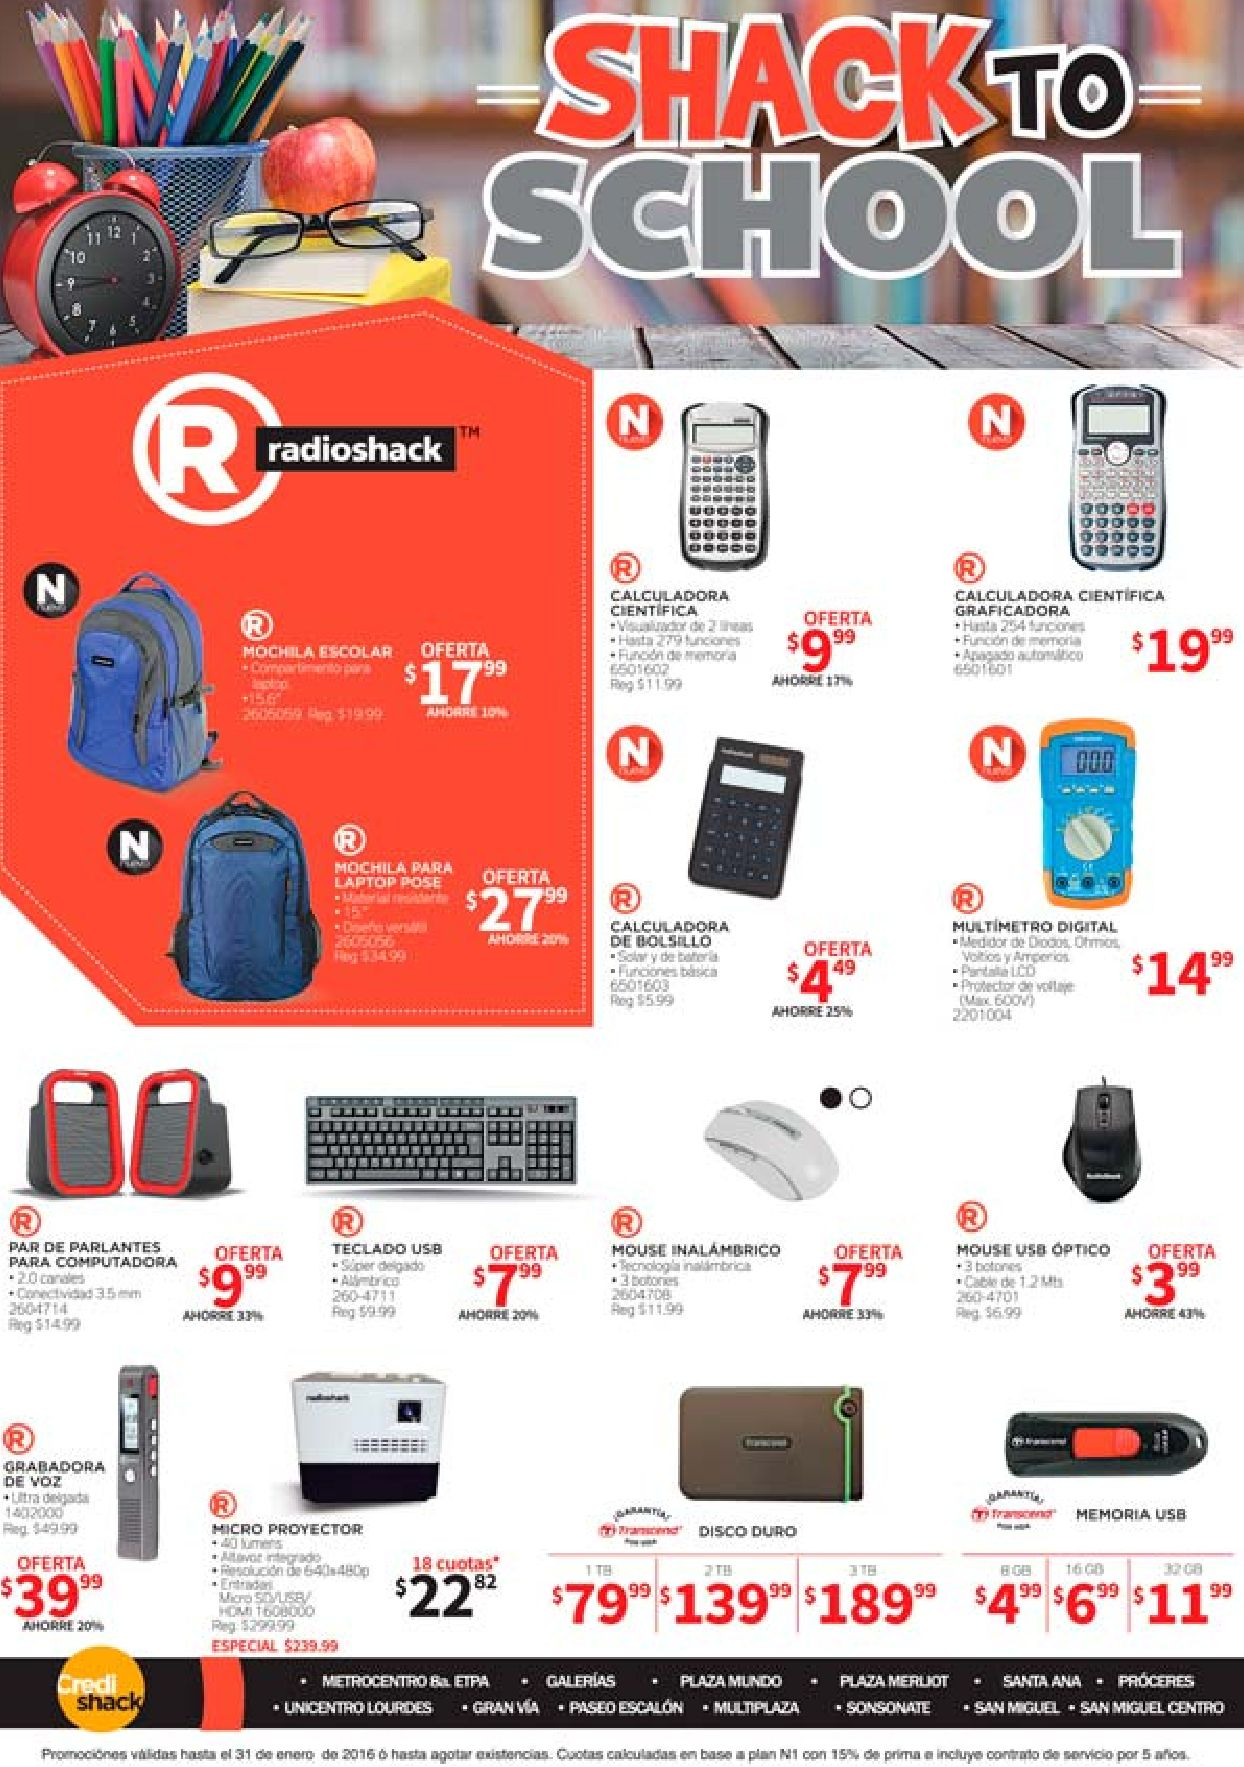 tech-geek-to-school-radio-shacks-gadgets